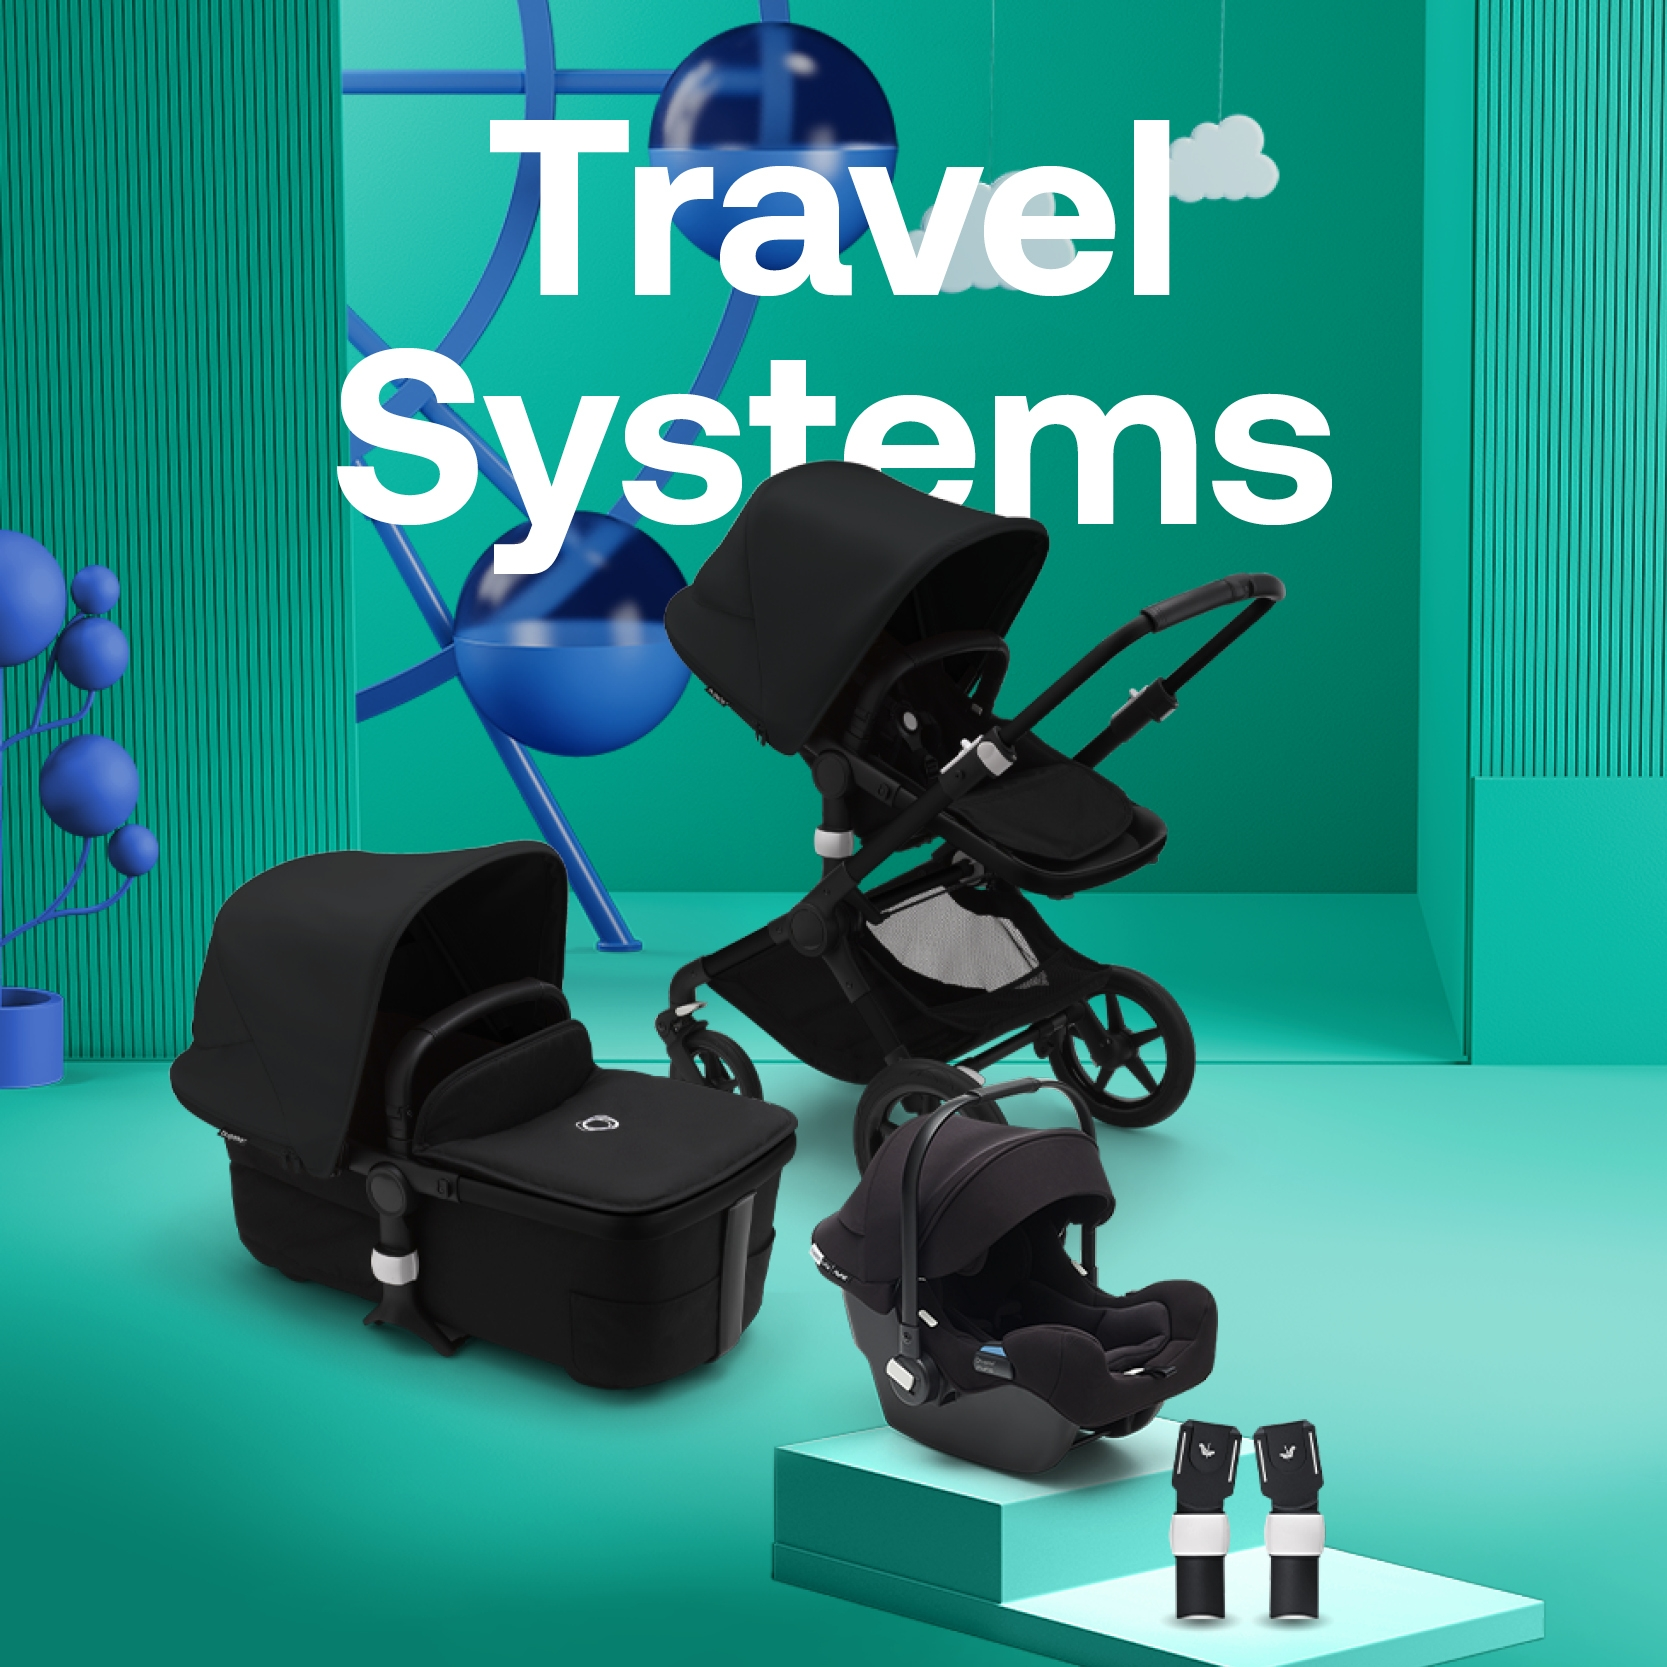 Bugaboo Travel Systems